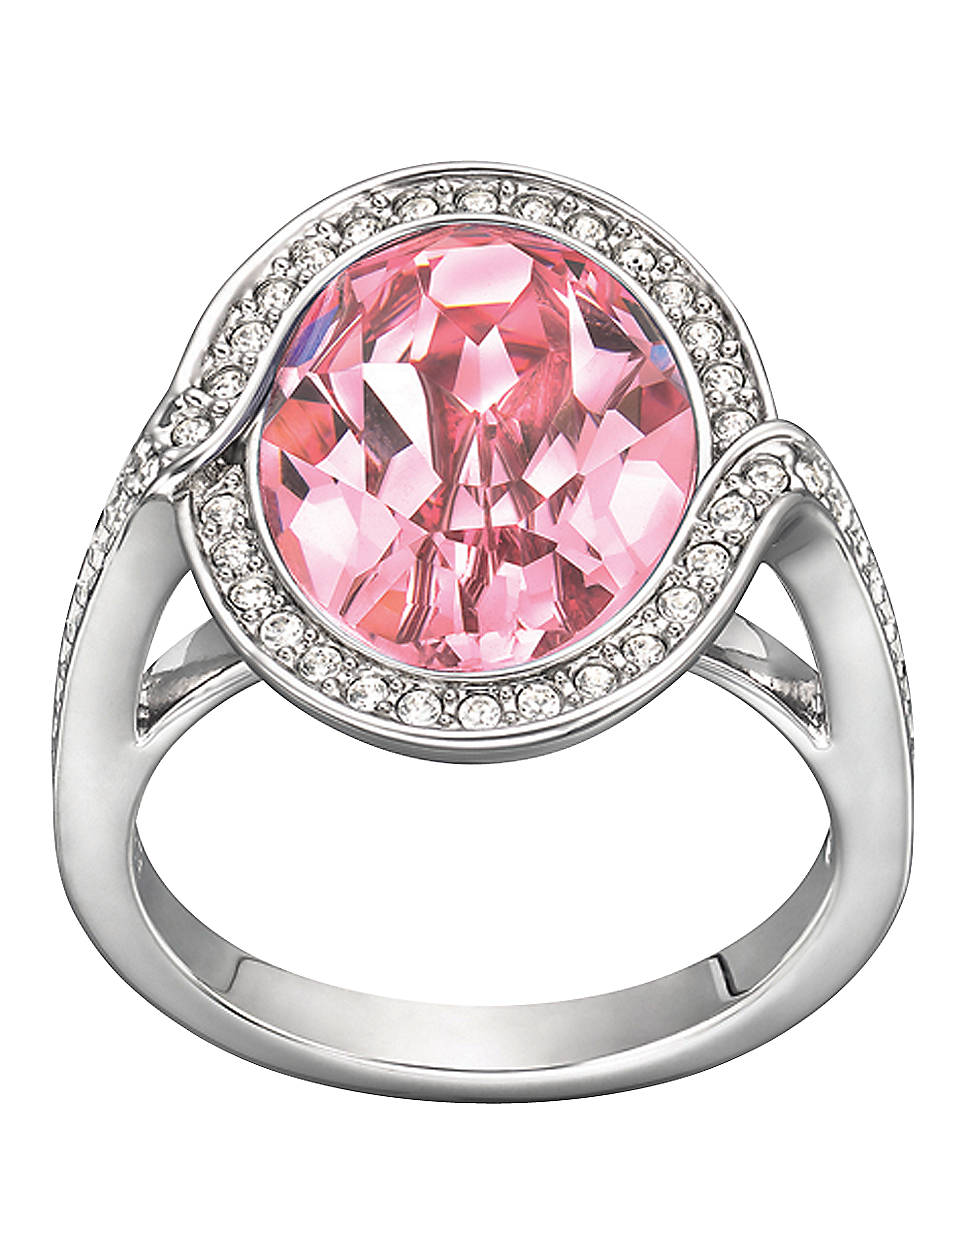 Lyst - Swarovski Tyra Silvertone Ring with Light Rose Crystal in Pink